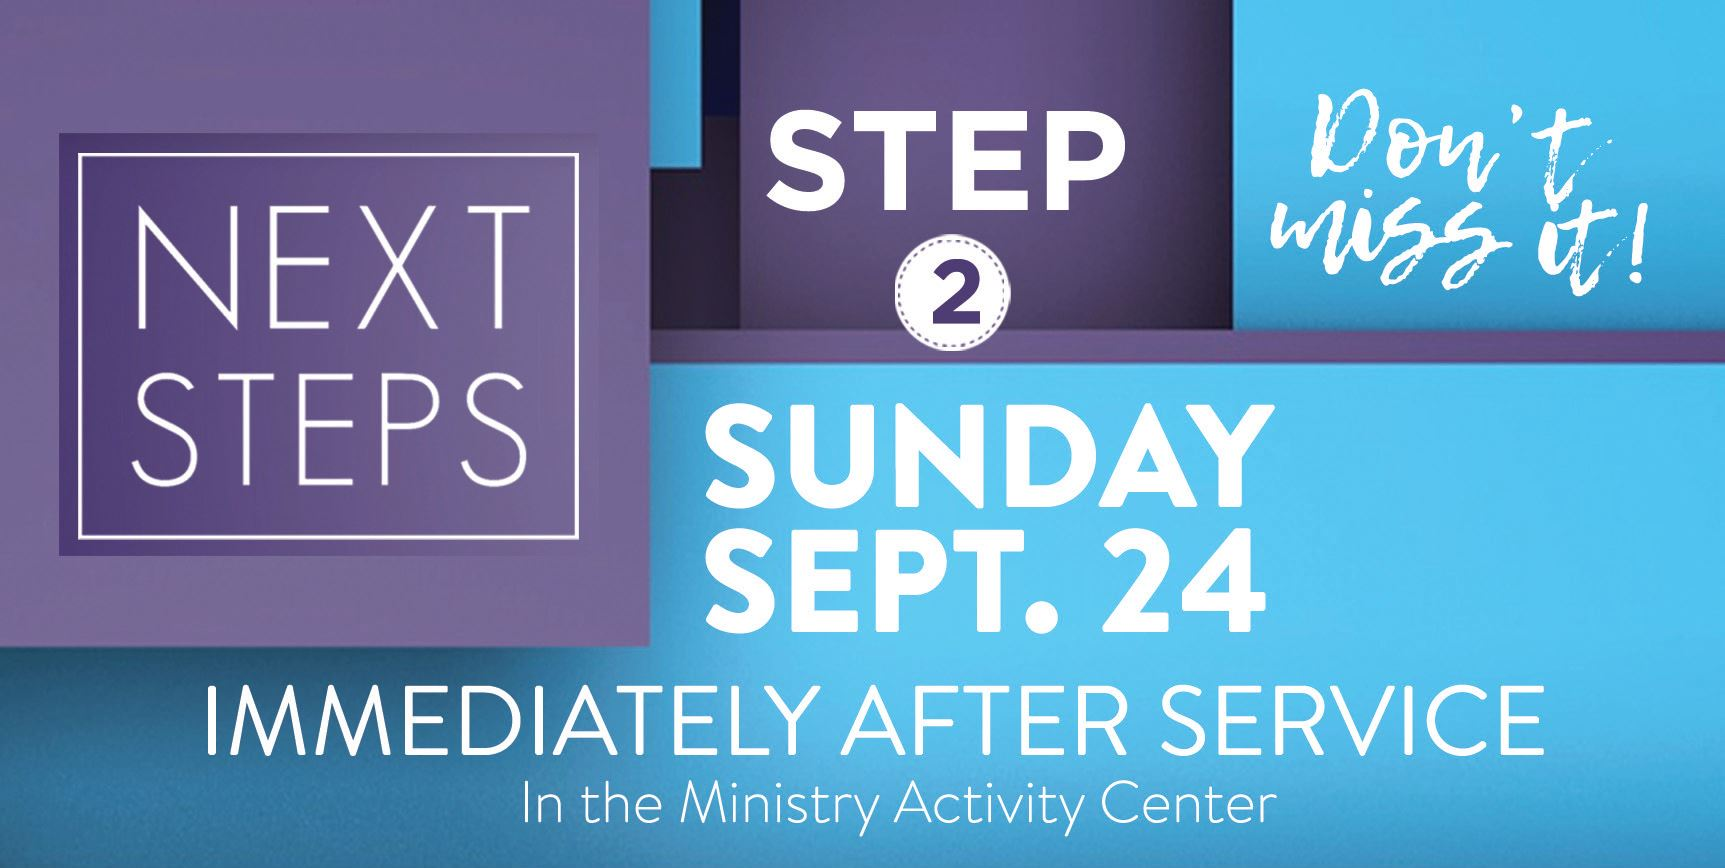 Next Step: Setp 2 - Don't miss it! | Sunday, September 24, Immediately after service in the Ministry Activity Center